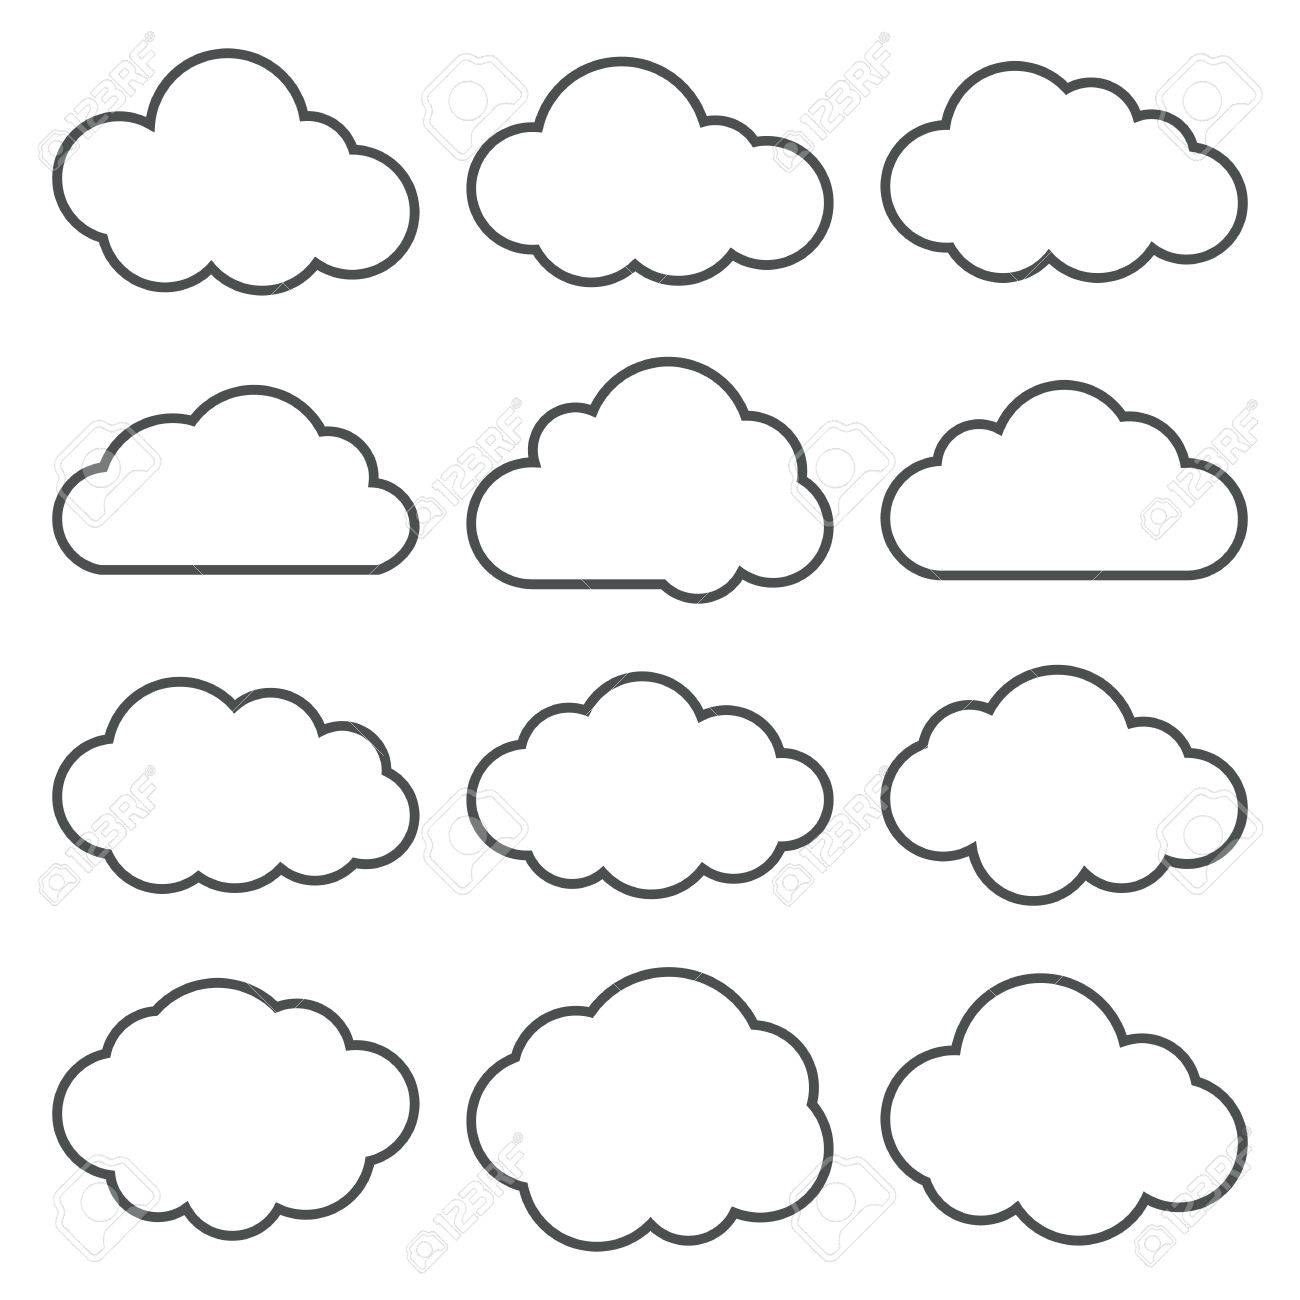 Cloud shapes thin line icons set. Cloud symbols. Collection of cloud pictograms. Vector icons of a clouds in thin line style. EPS8 vector illustration. - 53579801